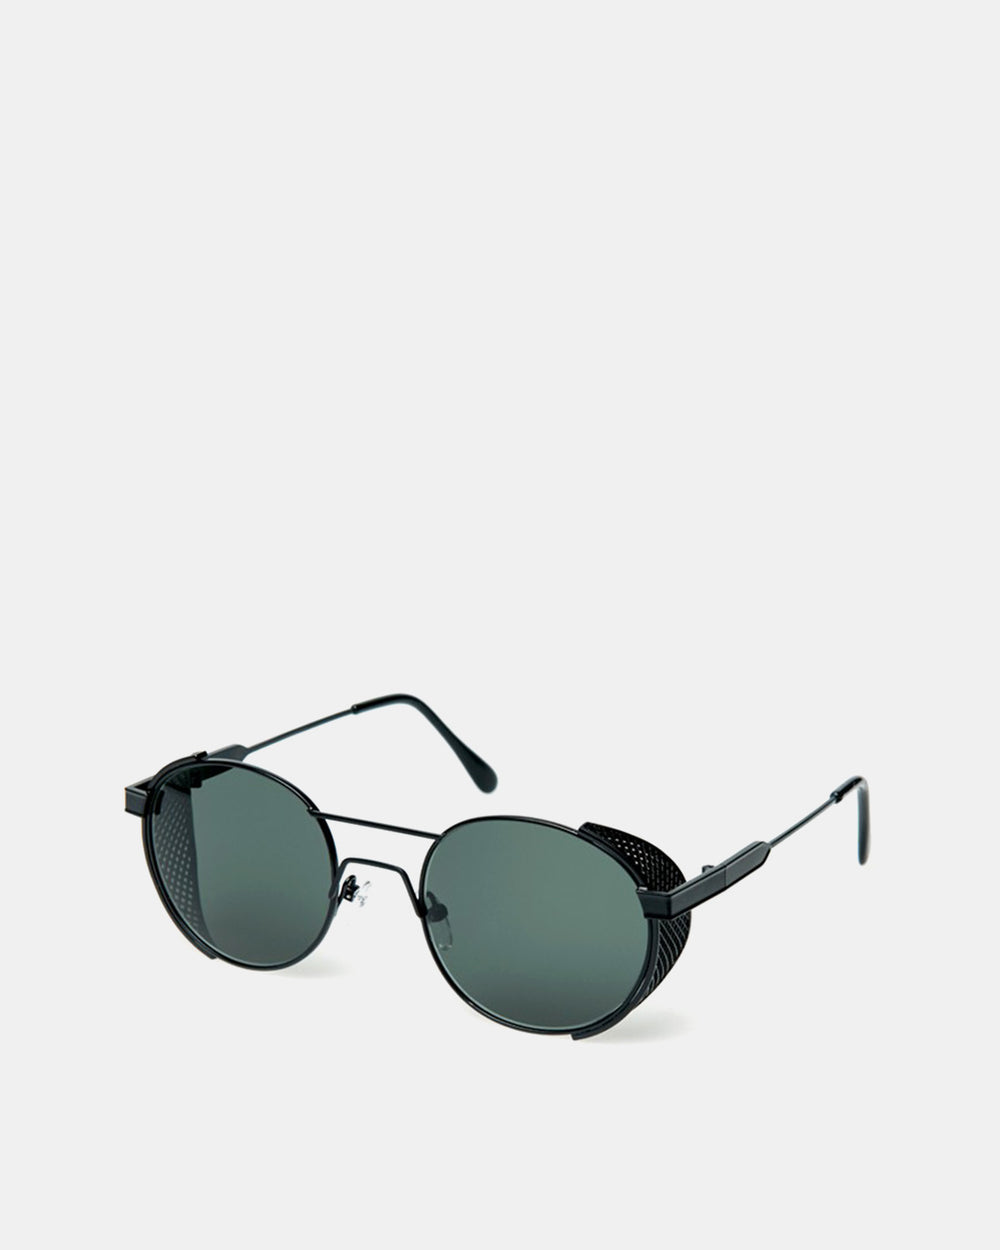 Han Kjobenhavn - Green Outdoor Sunglasses (Matt Black)